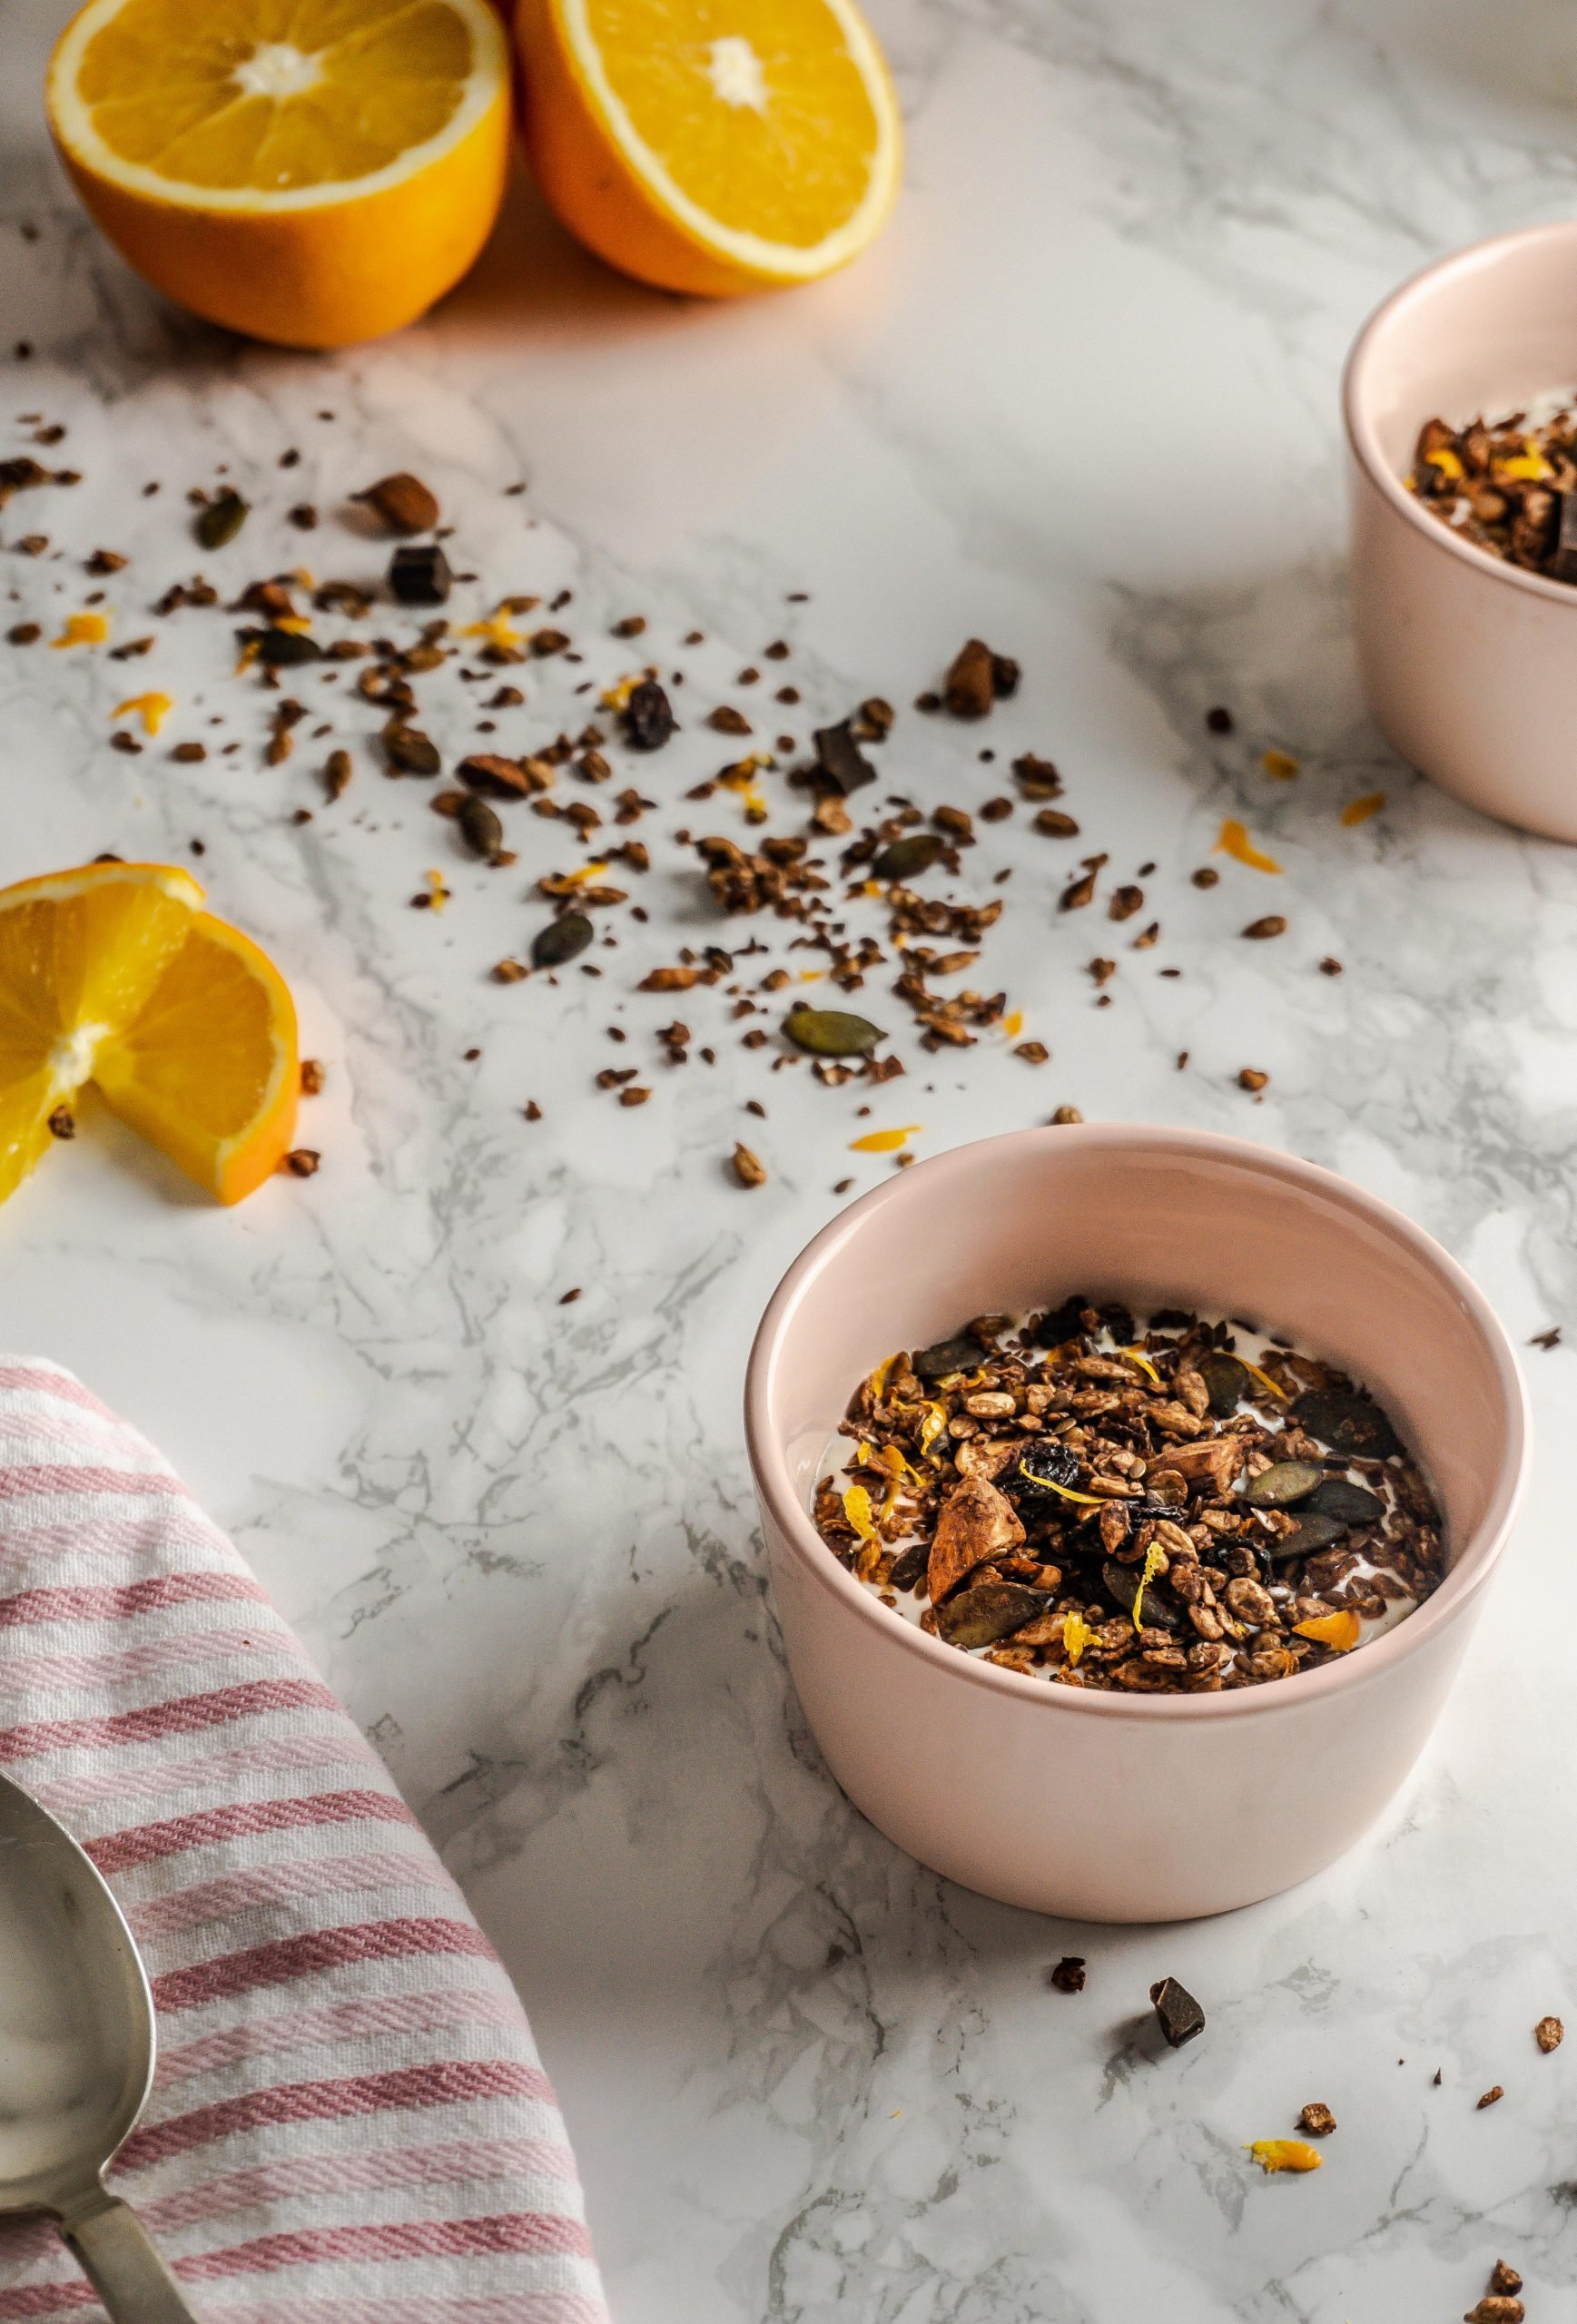 Chocolate Orange Granola strewn on a marble background and in small bowls with yoghurt surrounded by spoons, a kitchen towel, and sliced oranges photographed from a three-quarter angle